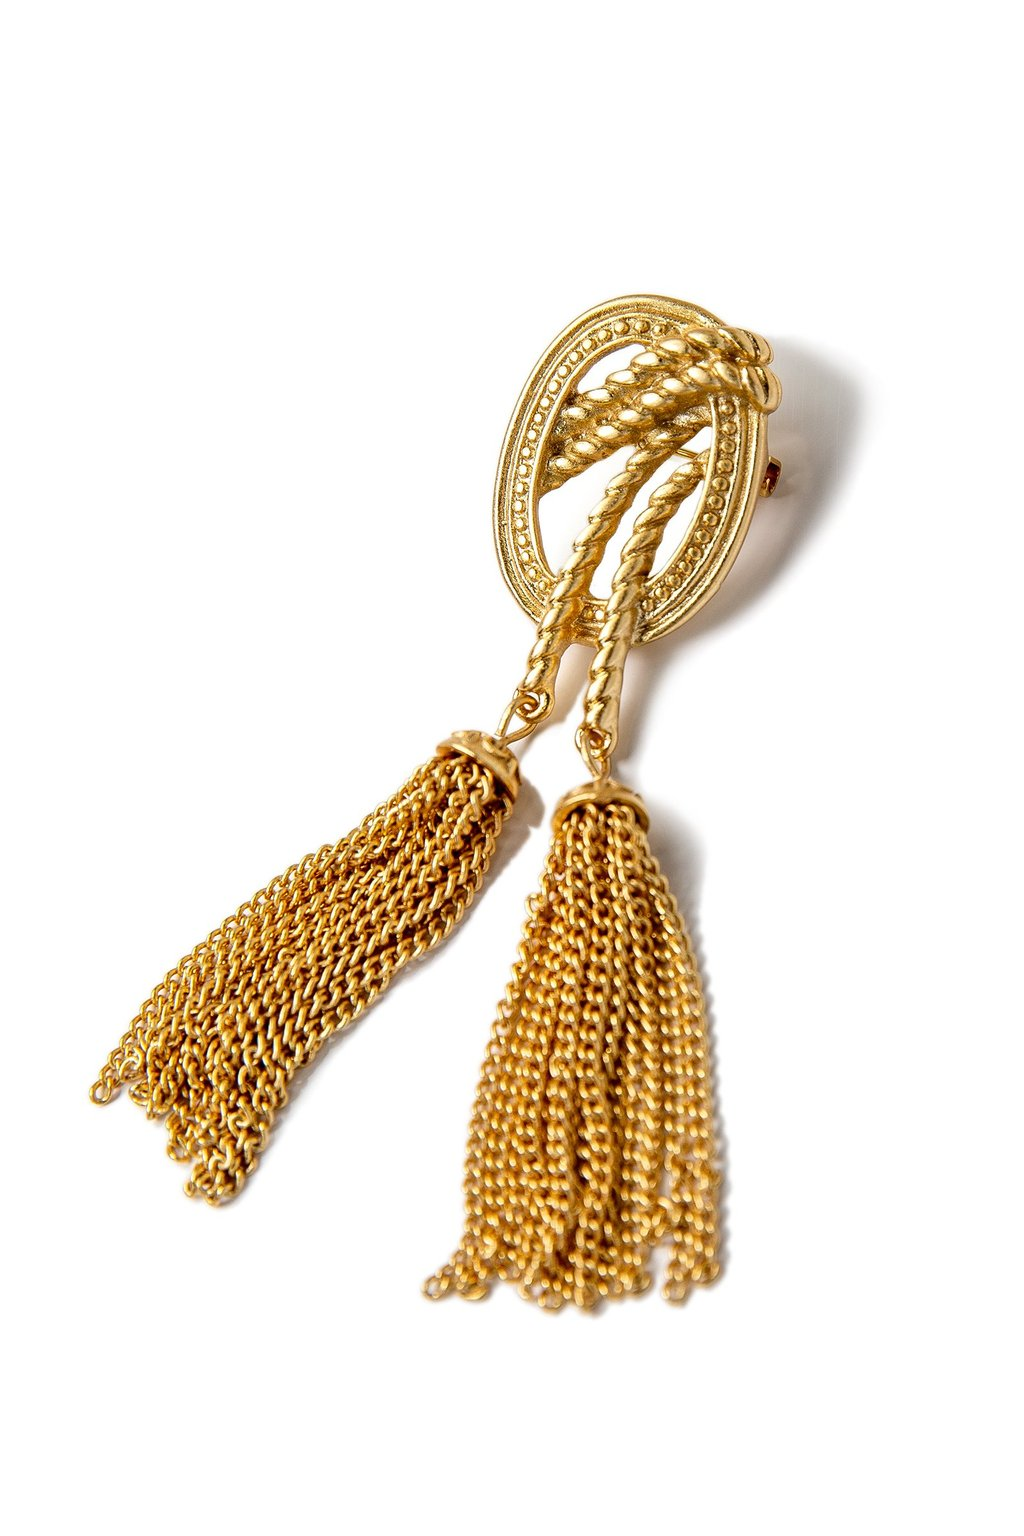 Regal Brooch by J.ING women's clothing and accessories